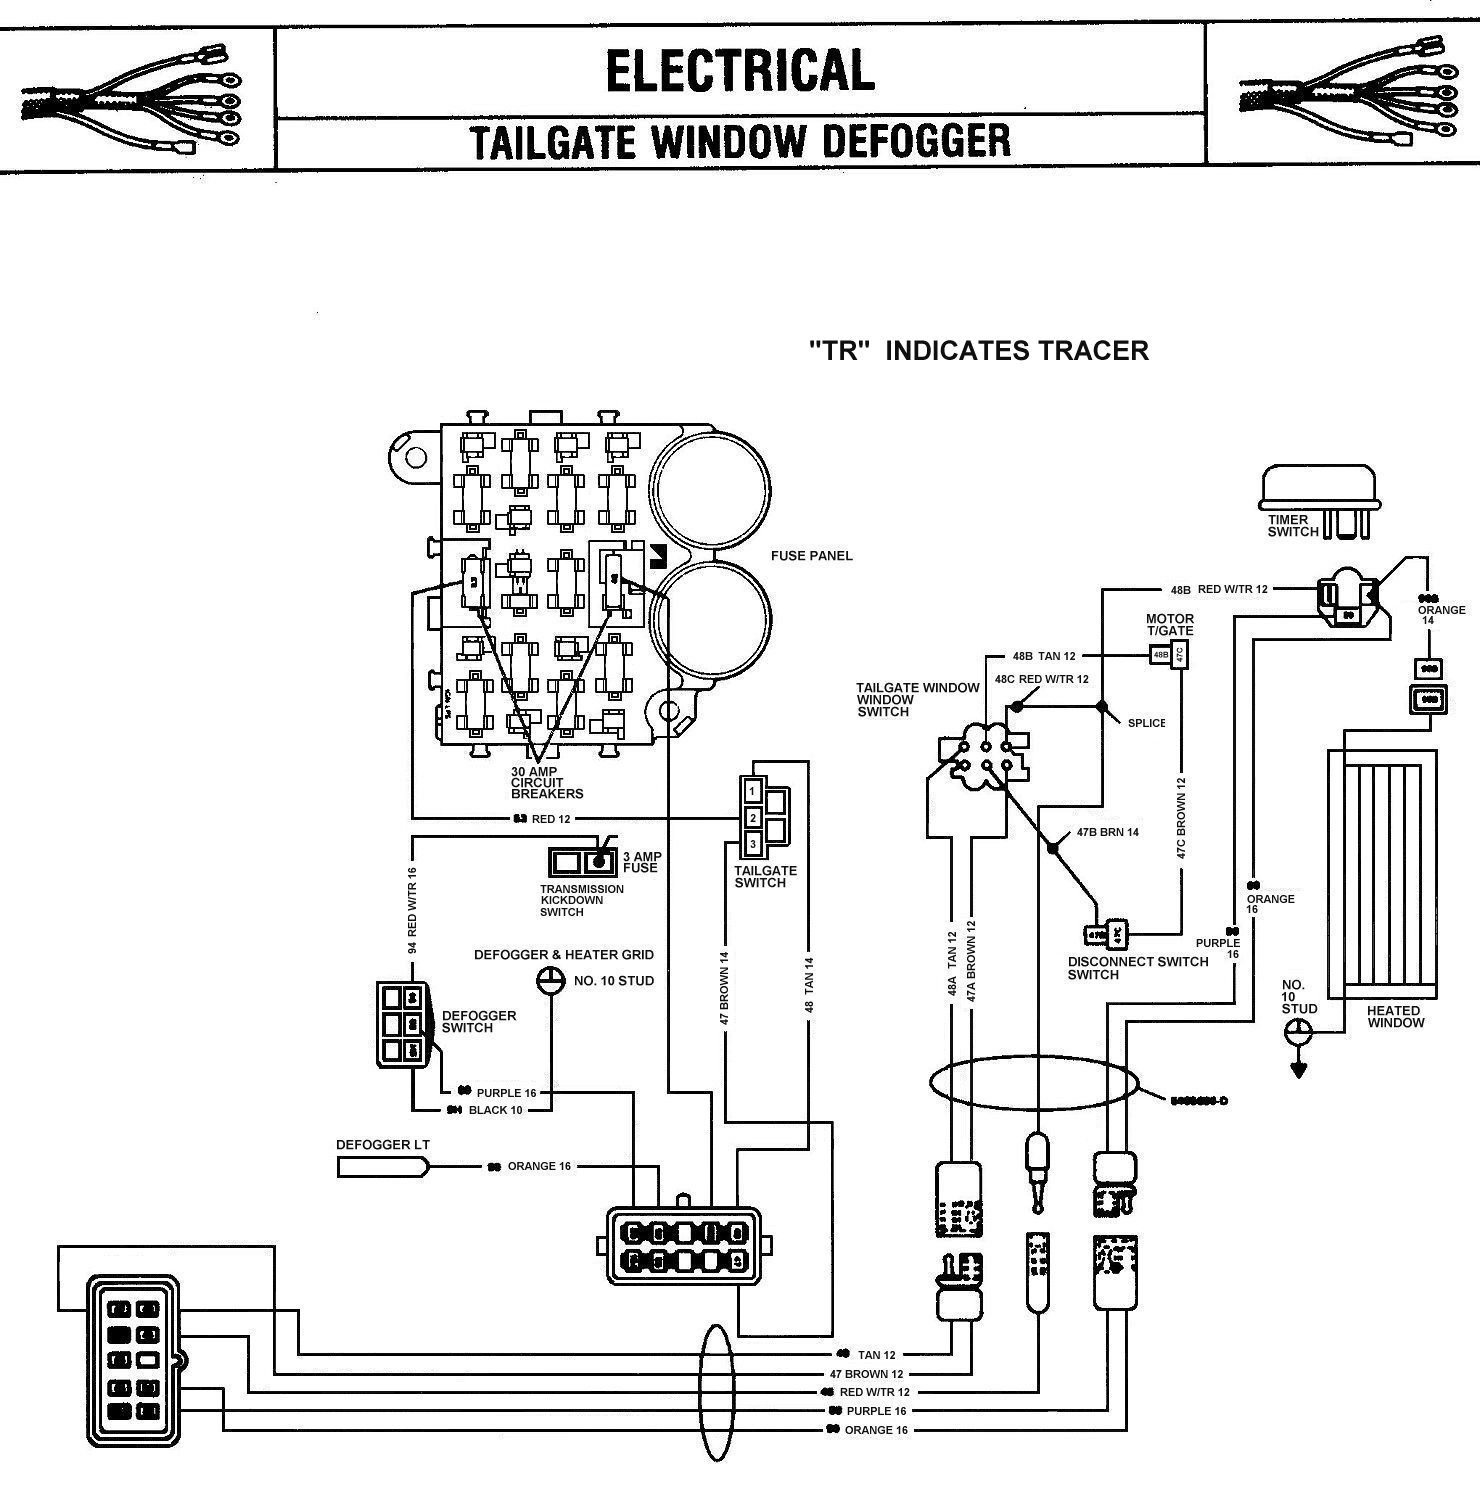 Jeep J10 Wiring - Wiring Diagrams Harley Davidson Cruise Control Wiring Diagram on